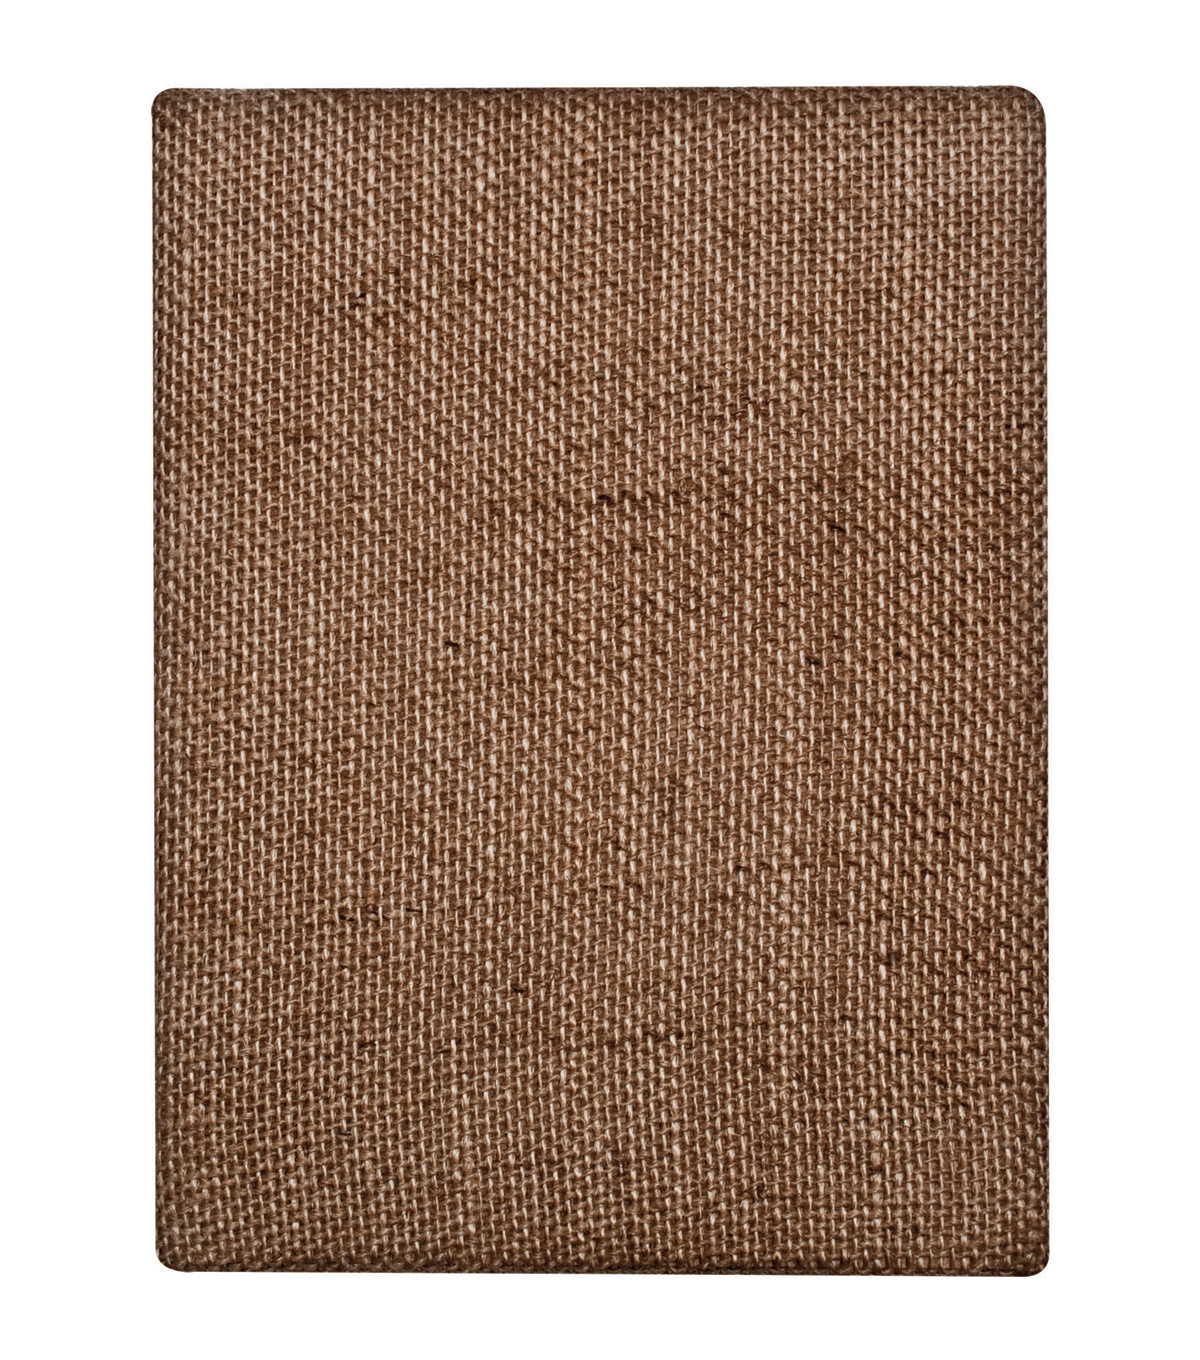 Tim Holtz Idea-Ology District Market Bare Burlap Panel 6\u0022x8\u0022